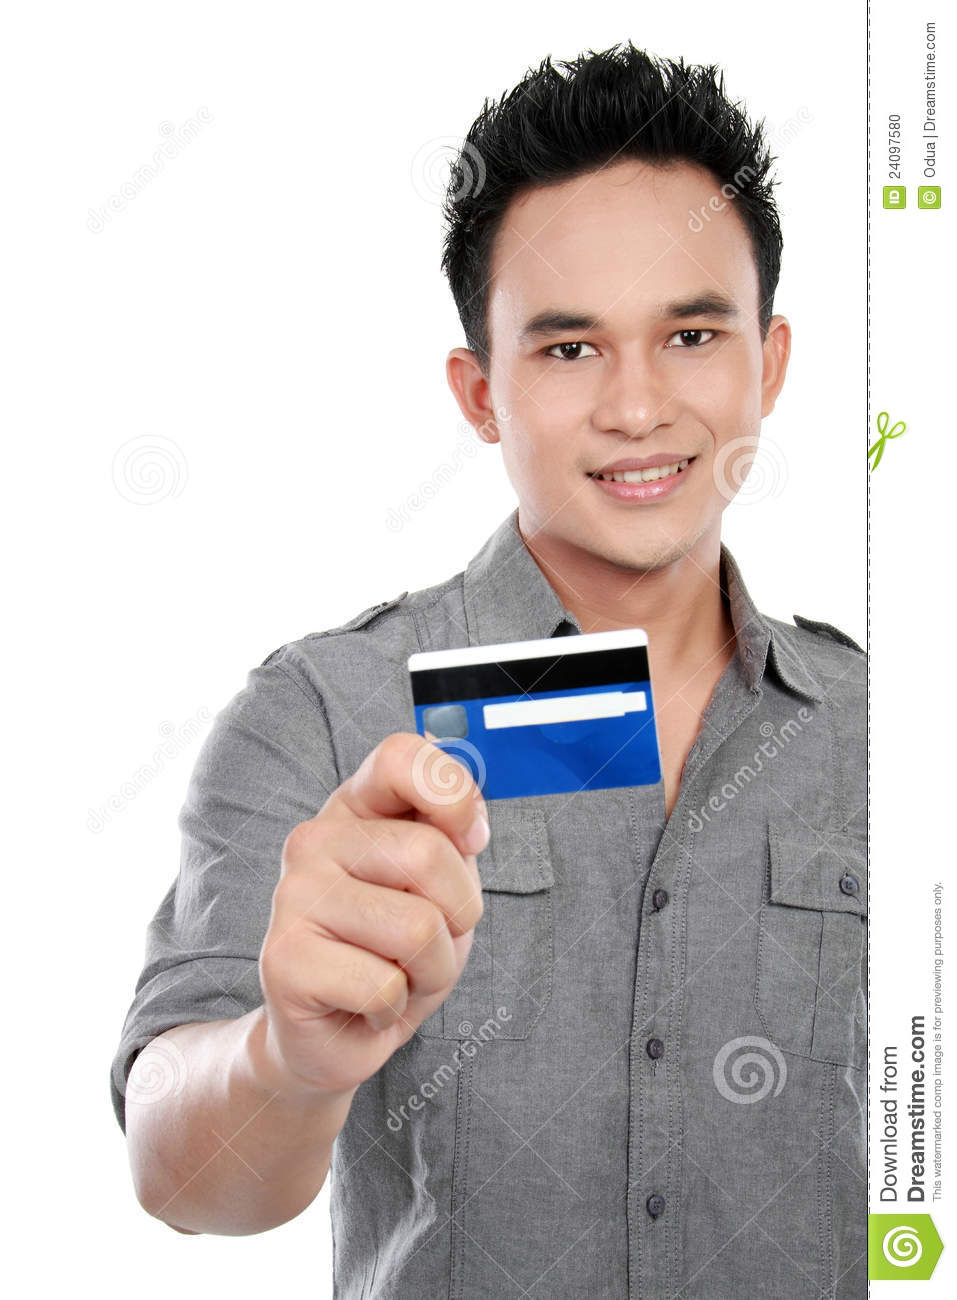 Man With Credit Card Stock Photo. Image Of Attractive